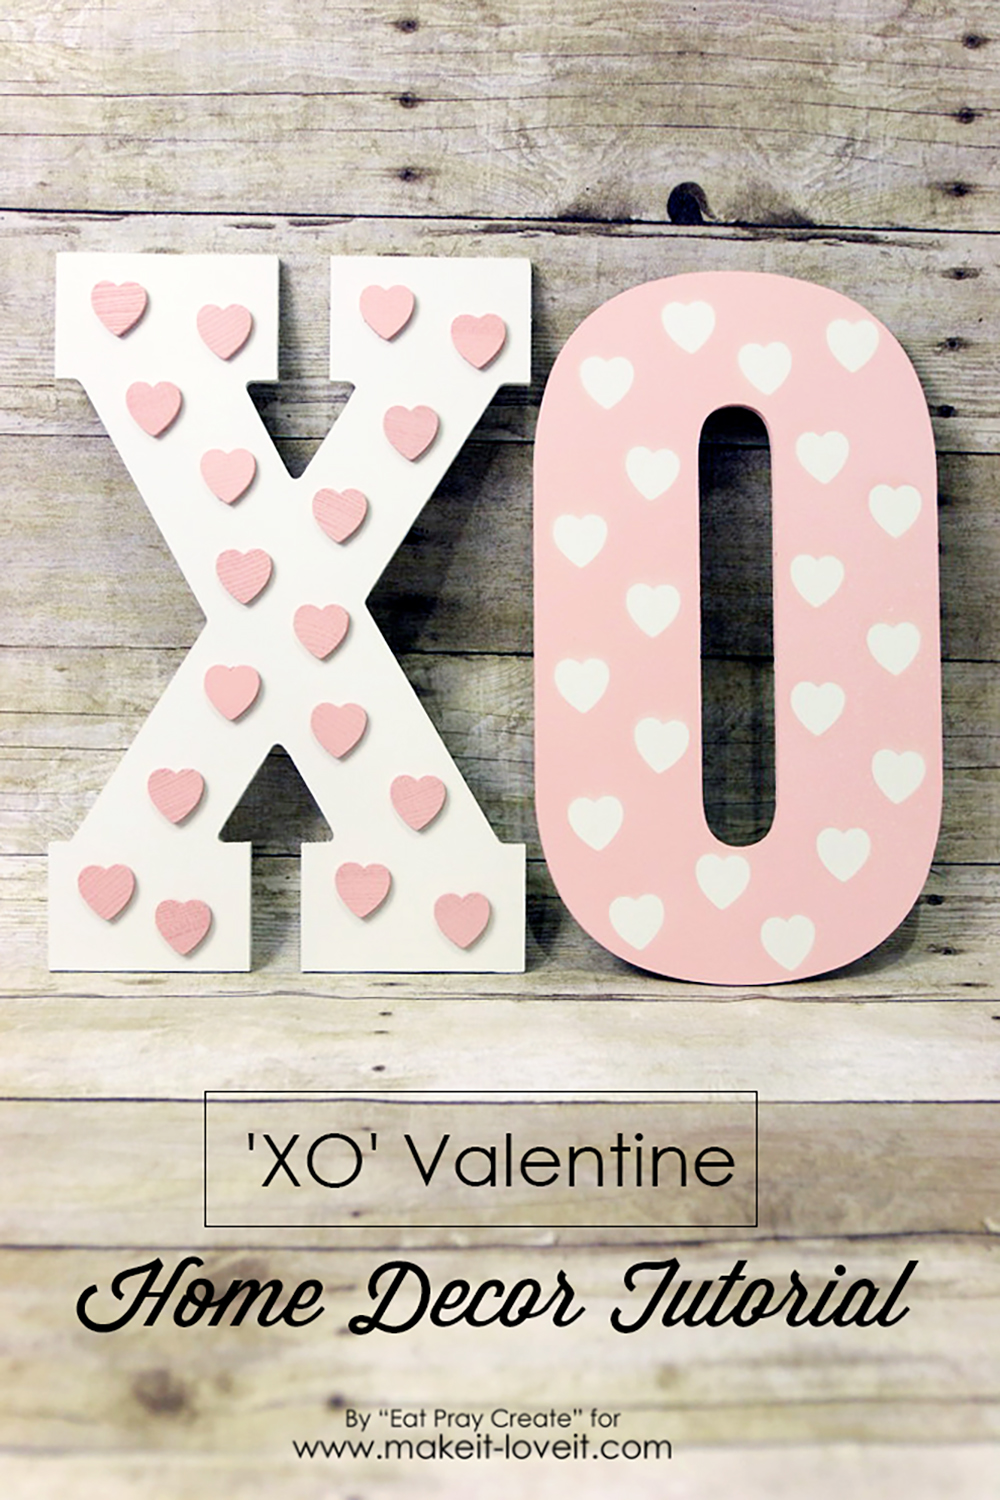 'XO' Valentine Home Decor Tutorial